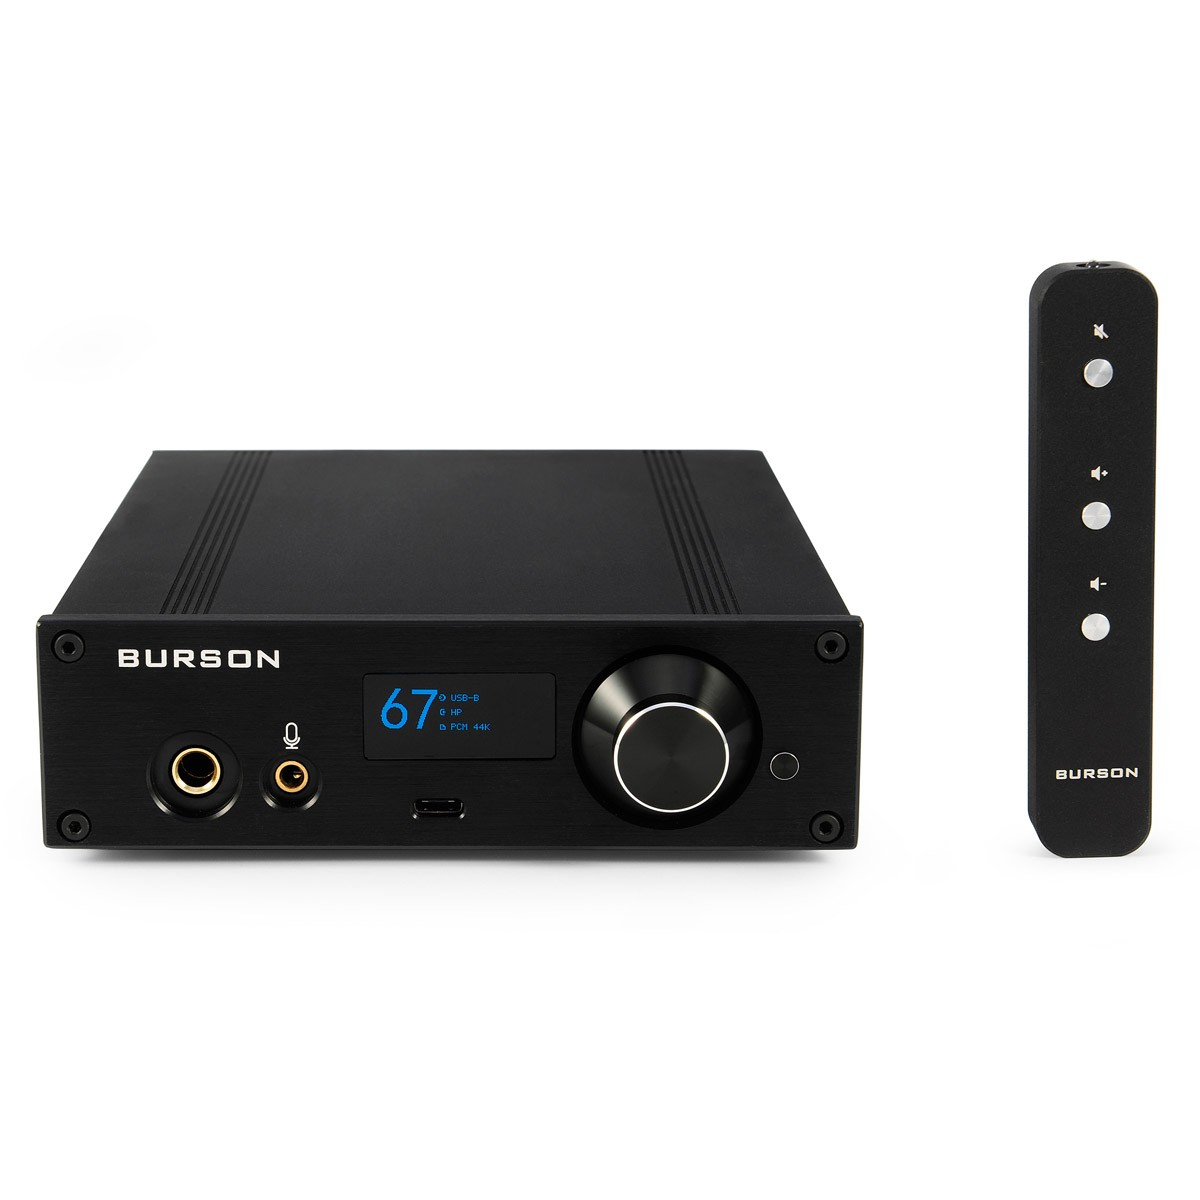 BURSON AUDIO PLAYMATE Class A PC Headphone Amplifier / DAC ES9038 XMOS / Preamplifier 32bit 384kHz DSD512